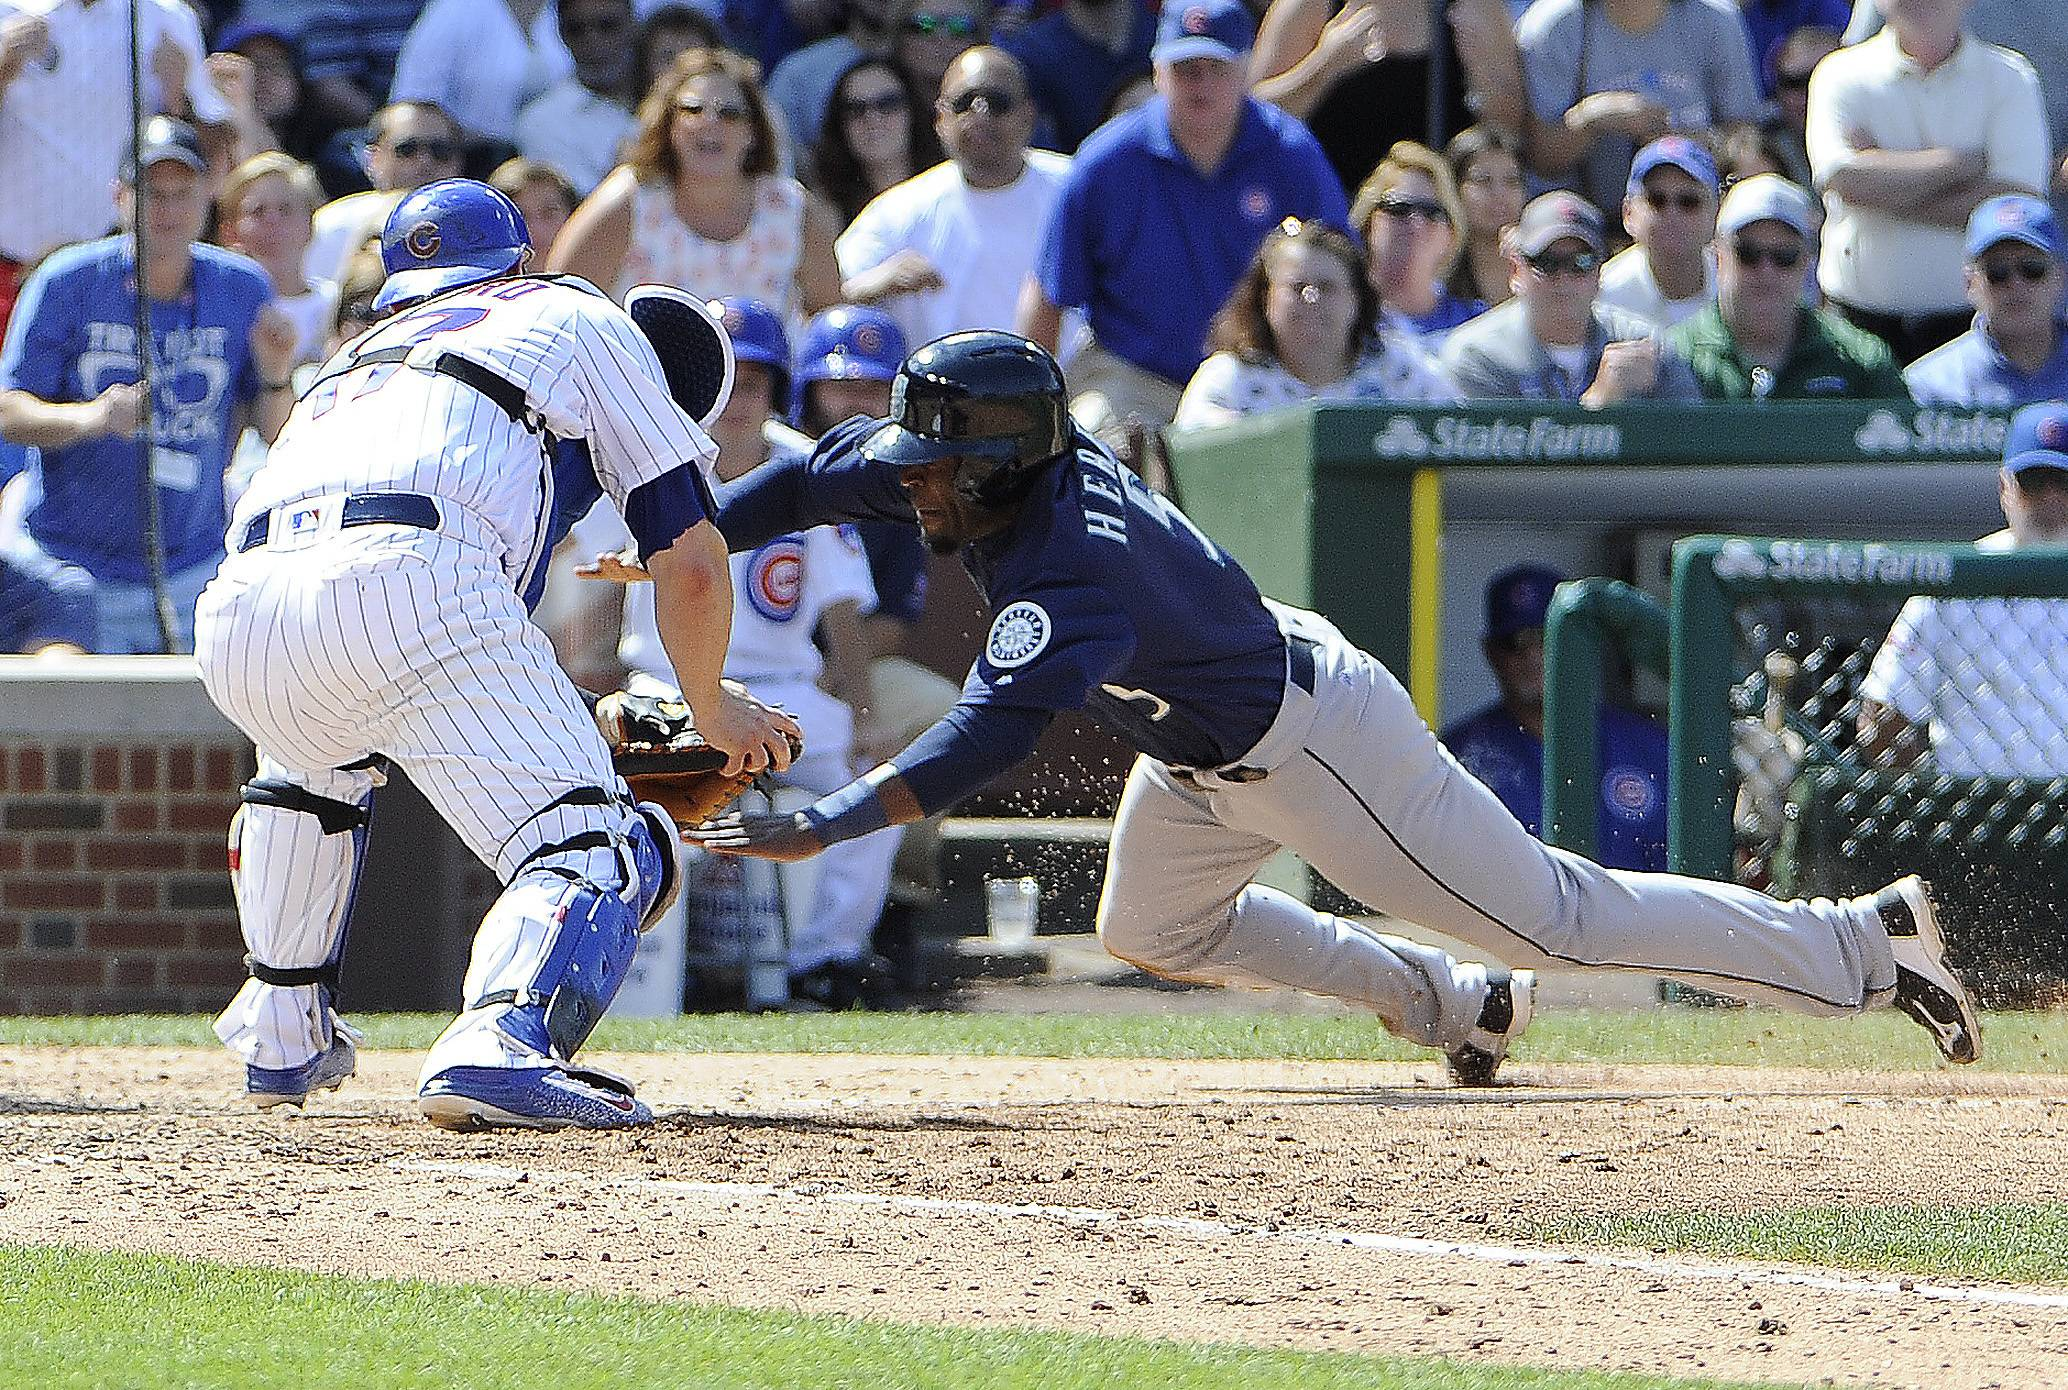 The Seattle Mariners scored 3 runs in the eighth inning Saturday, all with closer Aroldis Chapman on the mound, to post a come-from-behind 4-1 victory over the Chicago Cubs at Wrigley Field.